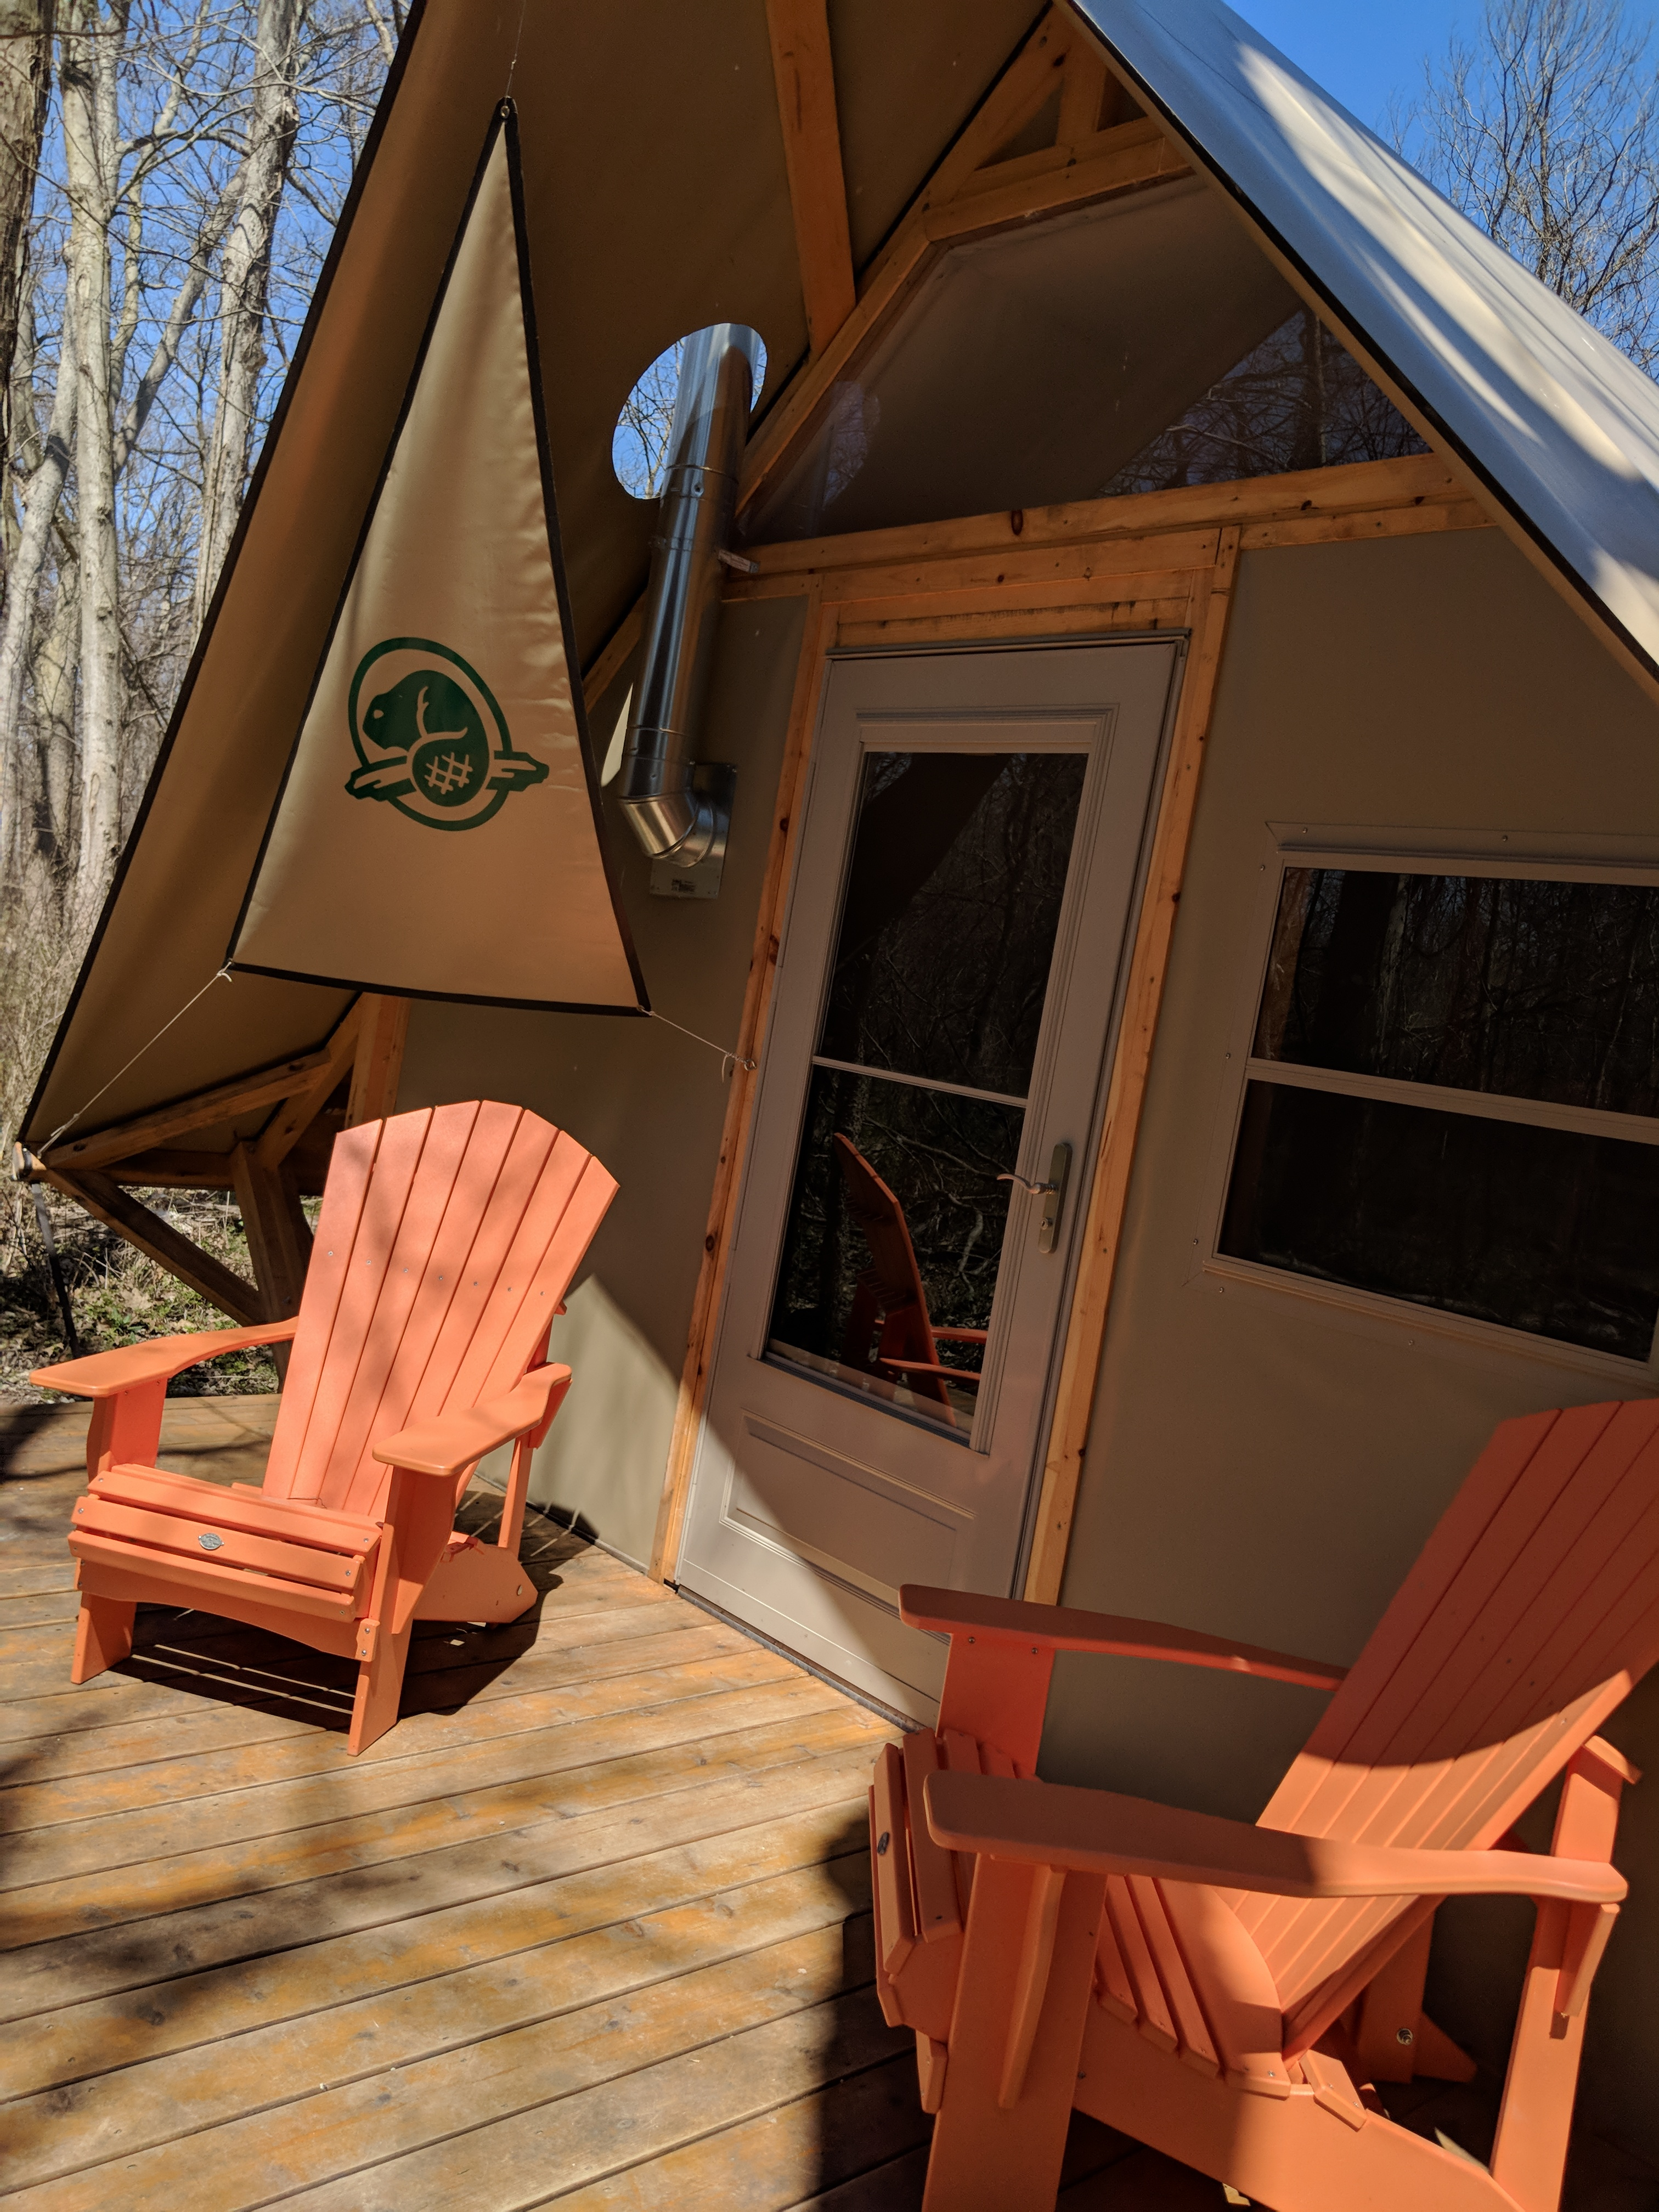 Otentiks are a stylish way to camp inside Point Pelee National Park in Leamington, Ontario.